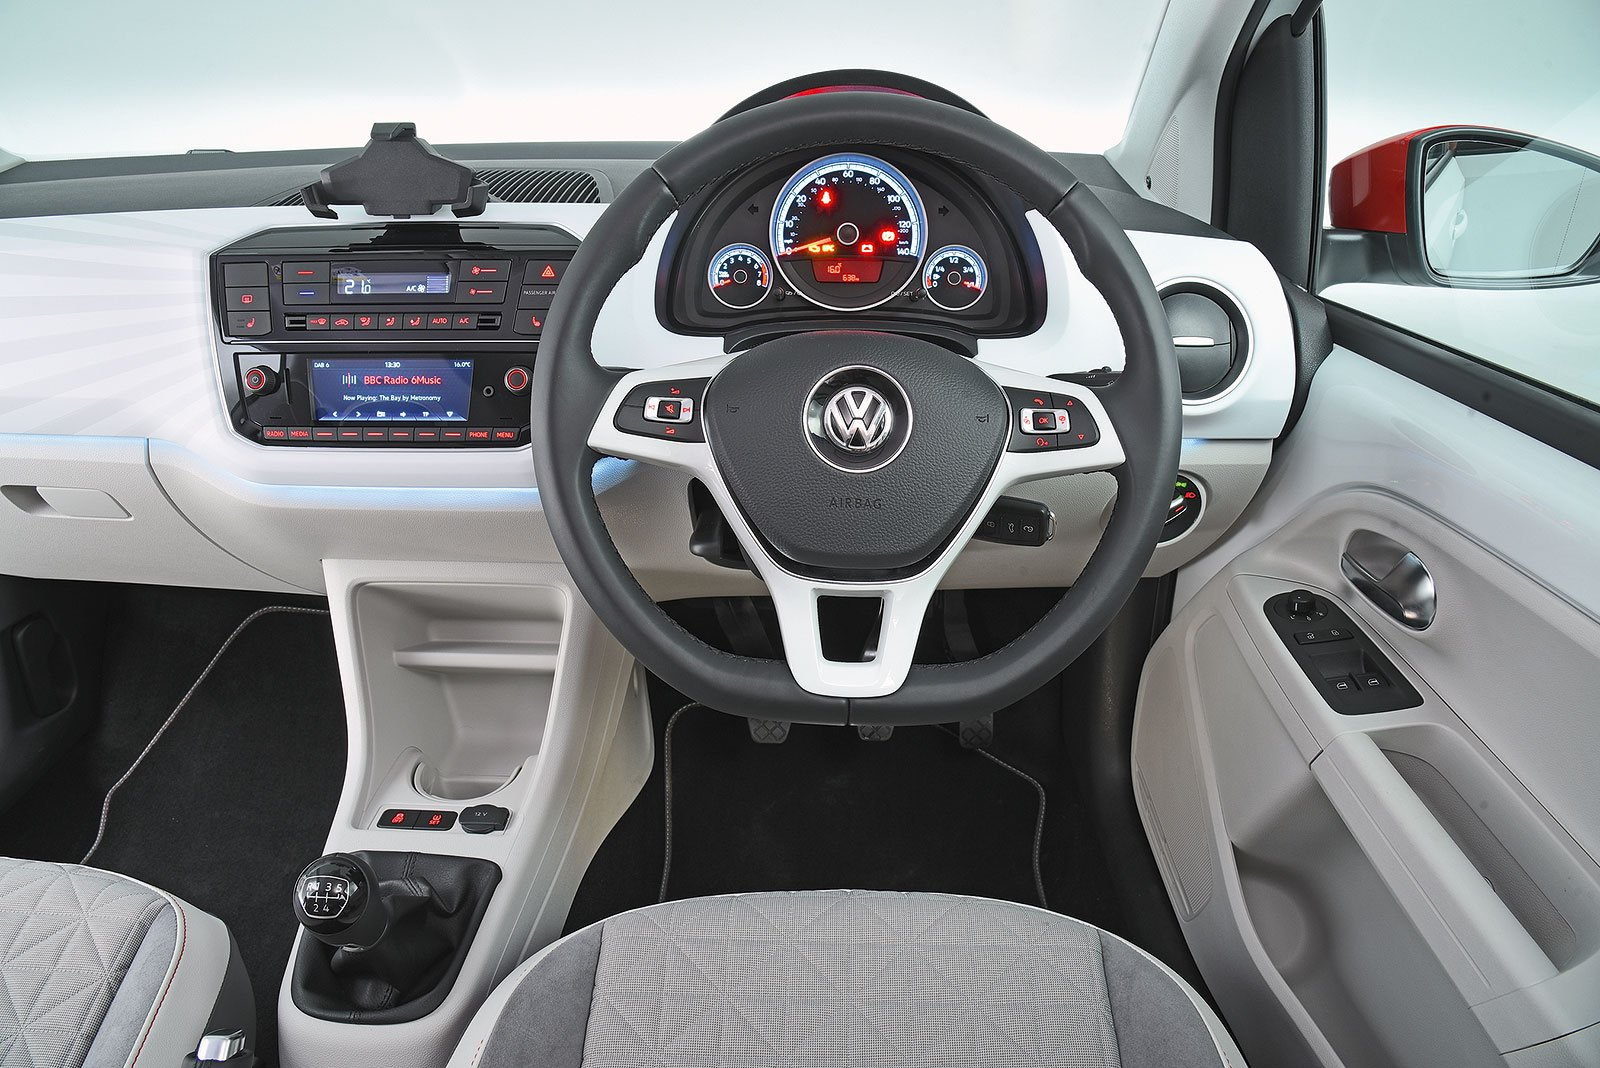 Volkswagen Up (2012-present) - interior